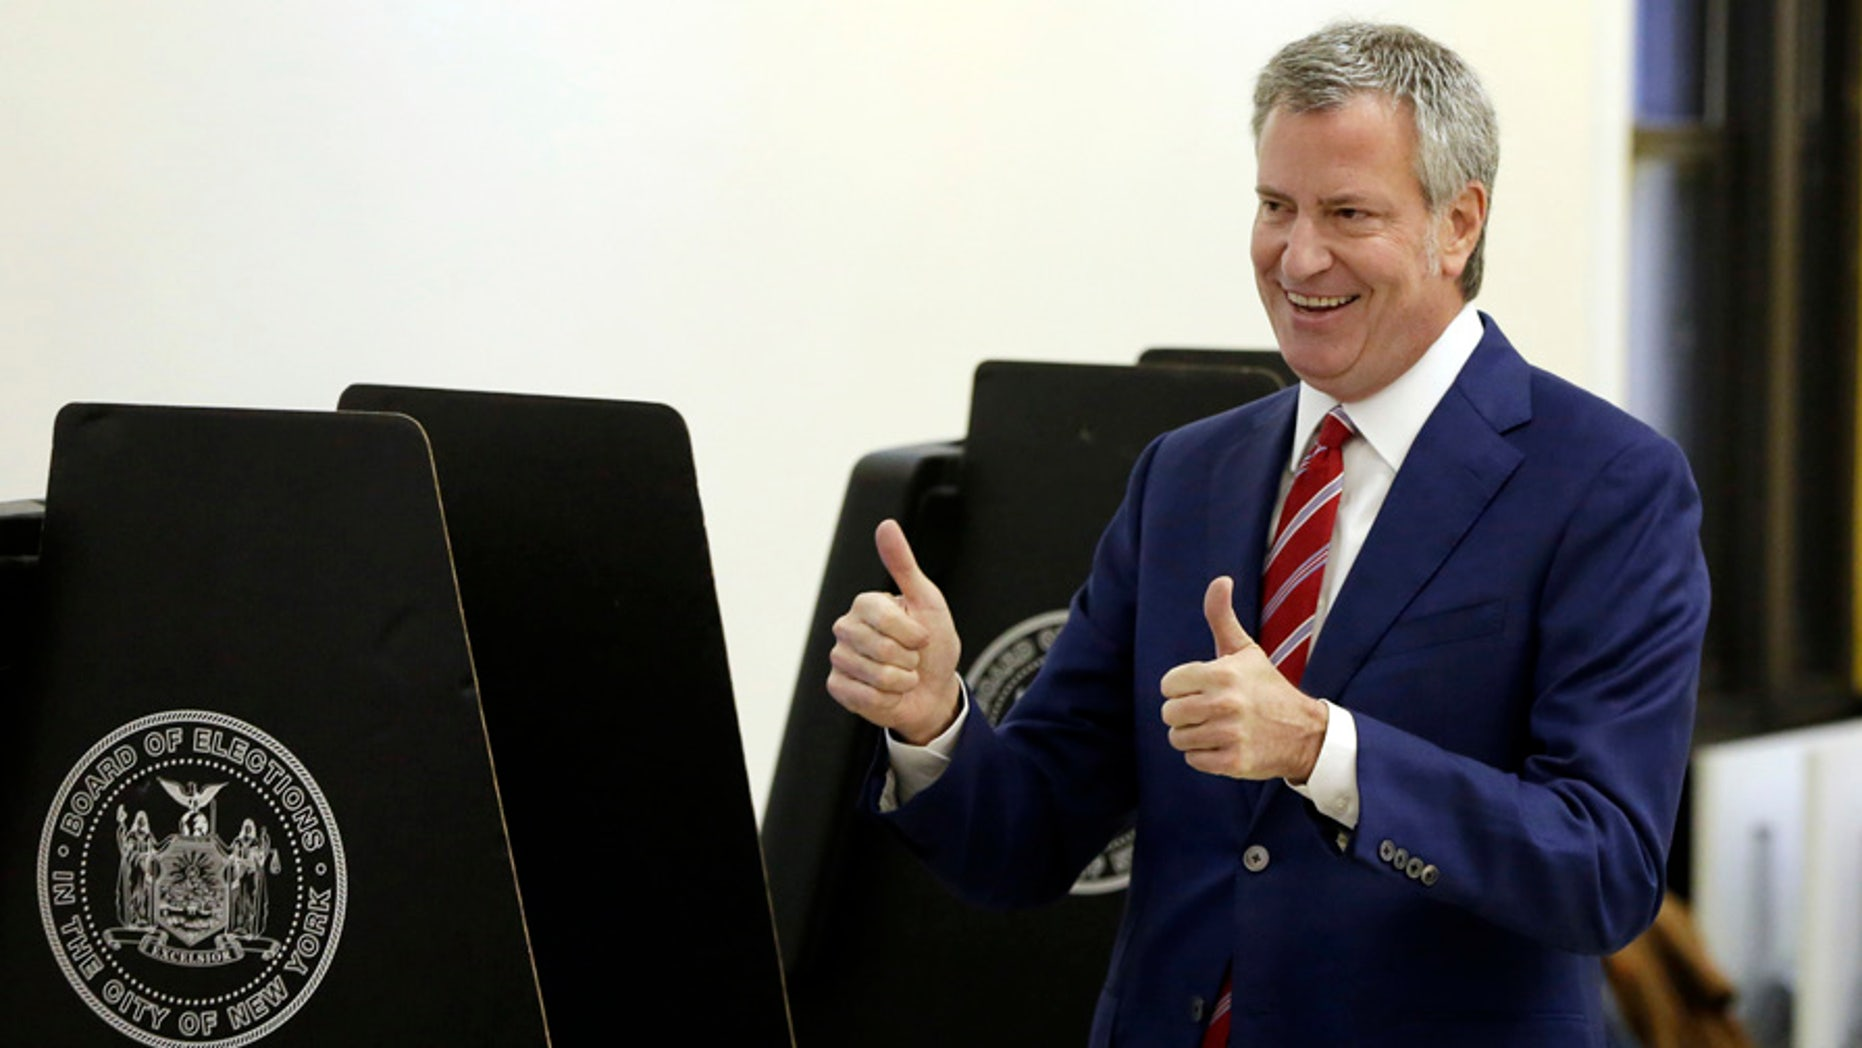 In this Nov. 7, 2017 photo, New York Mayor Bill de Blasio signals a double thumbs-up after voting at the Park Slope Library, in the Brooklyn borough of New York.